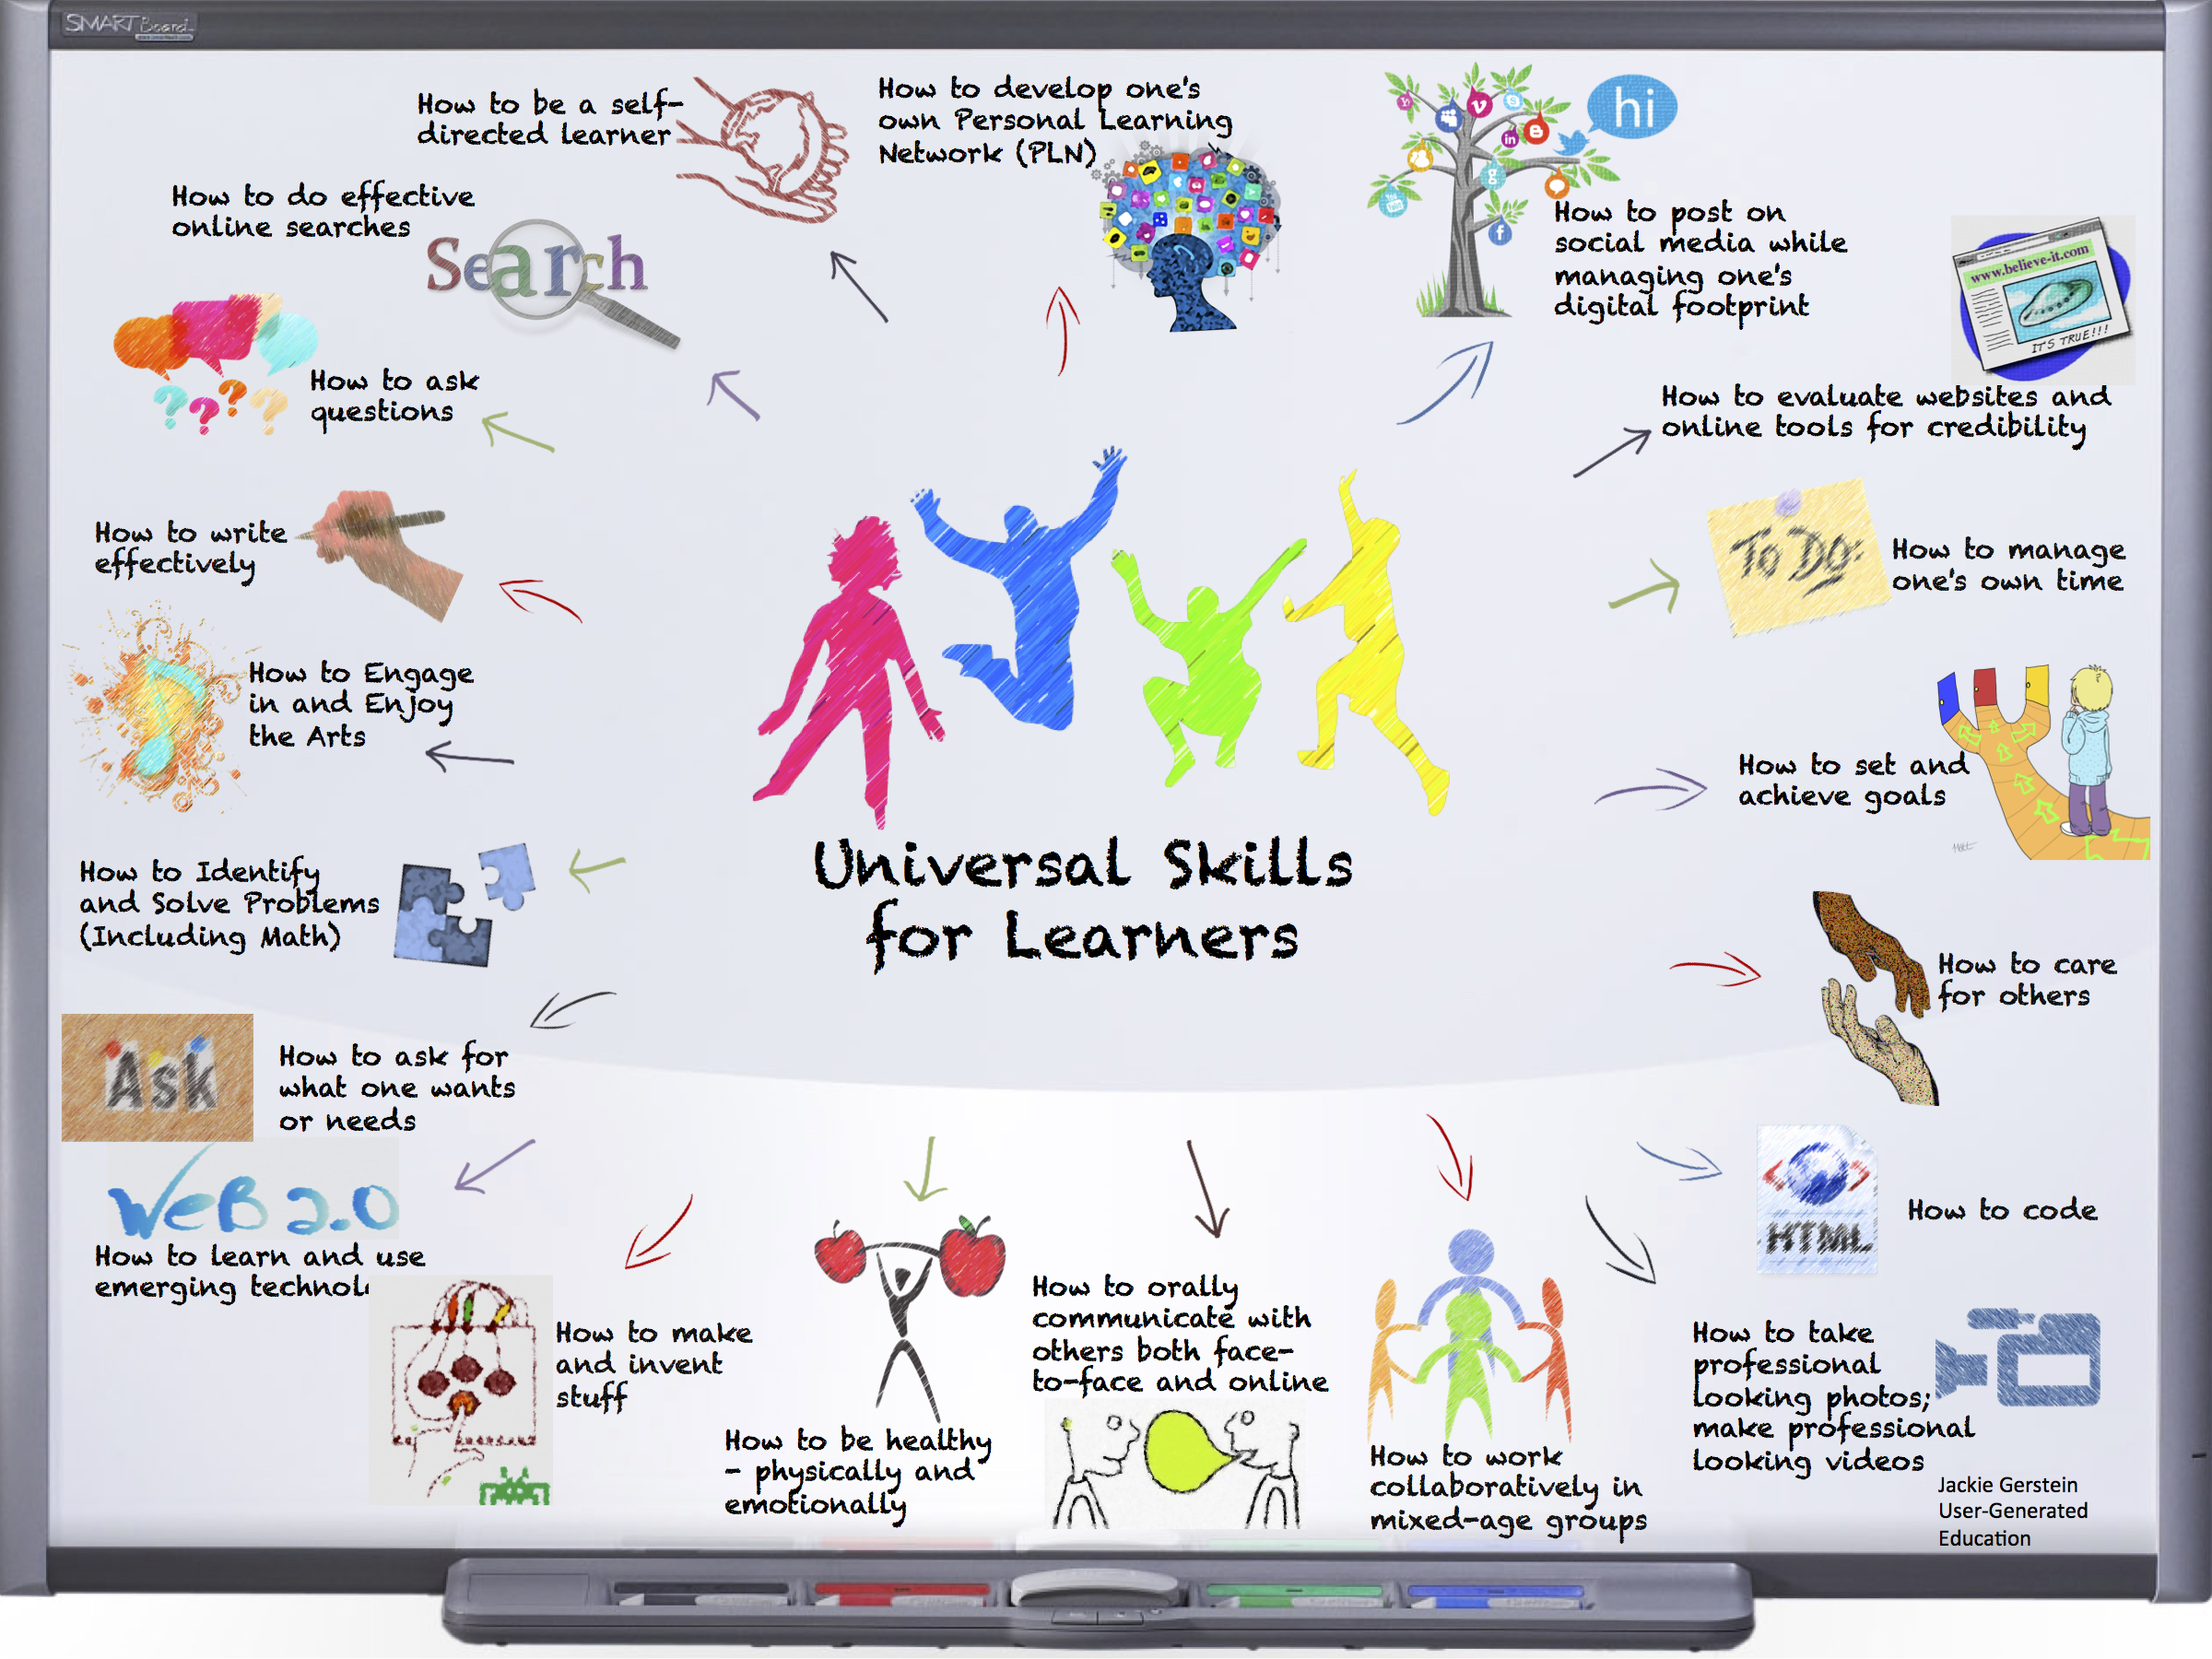 Universal Skills All Learners Should Know How to Do